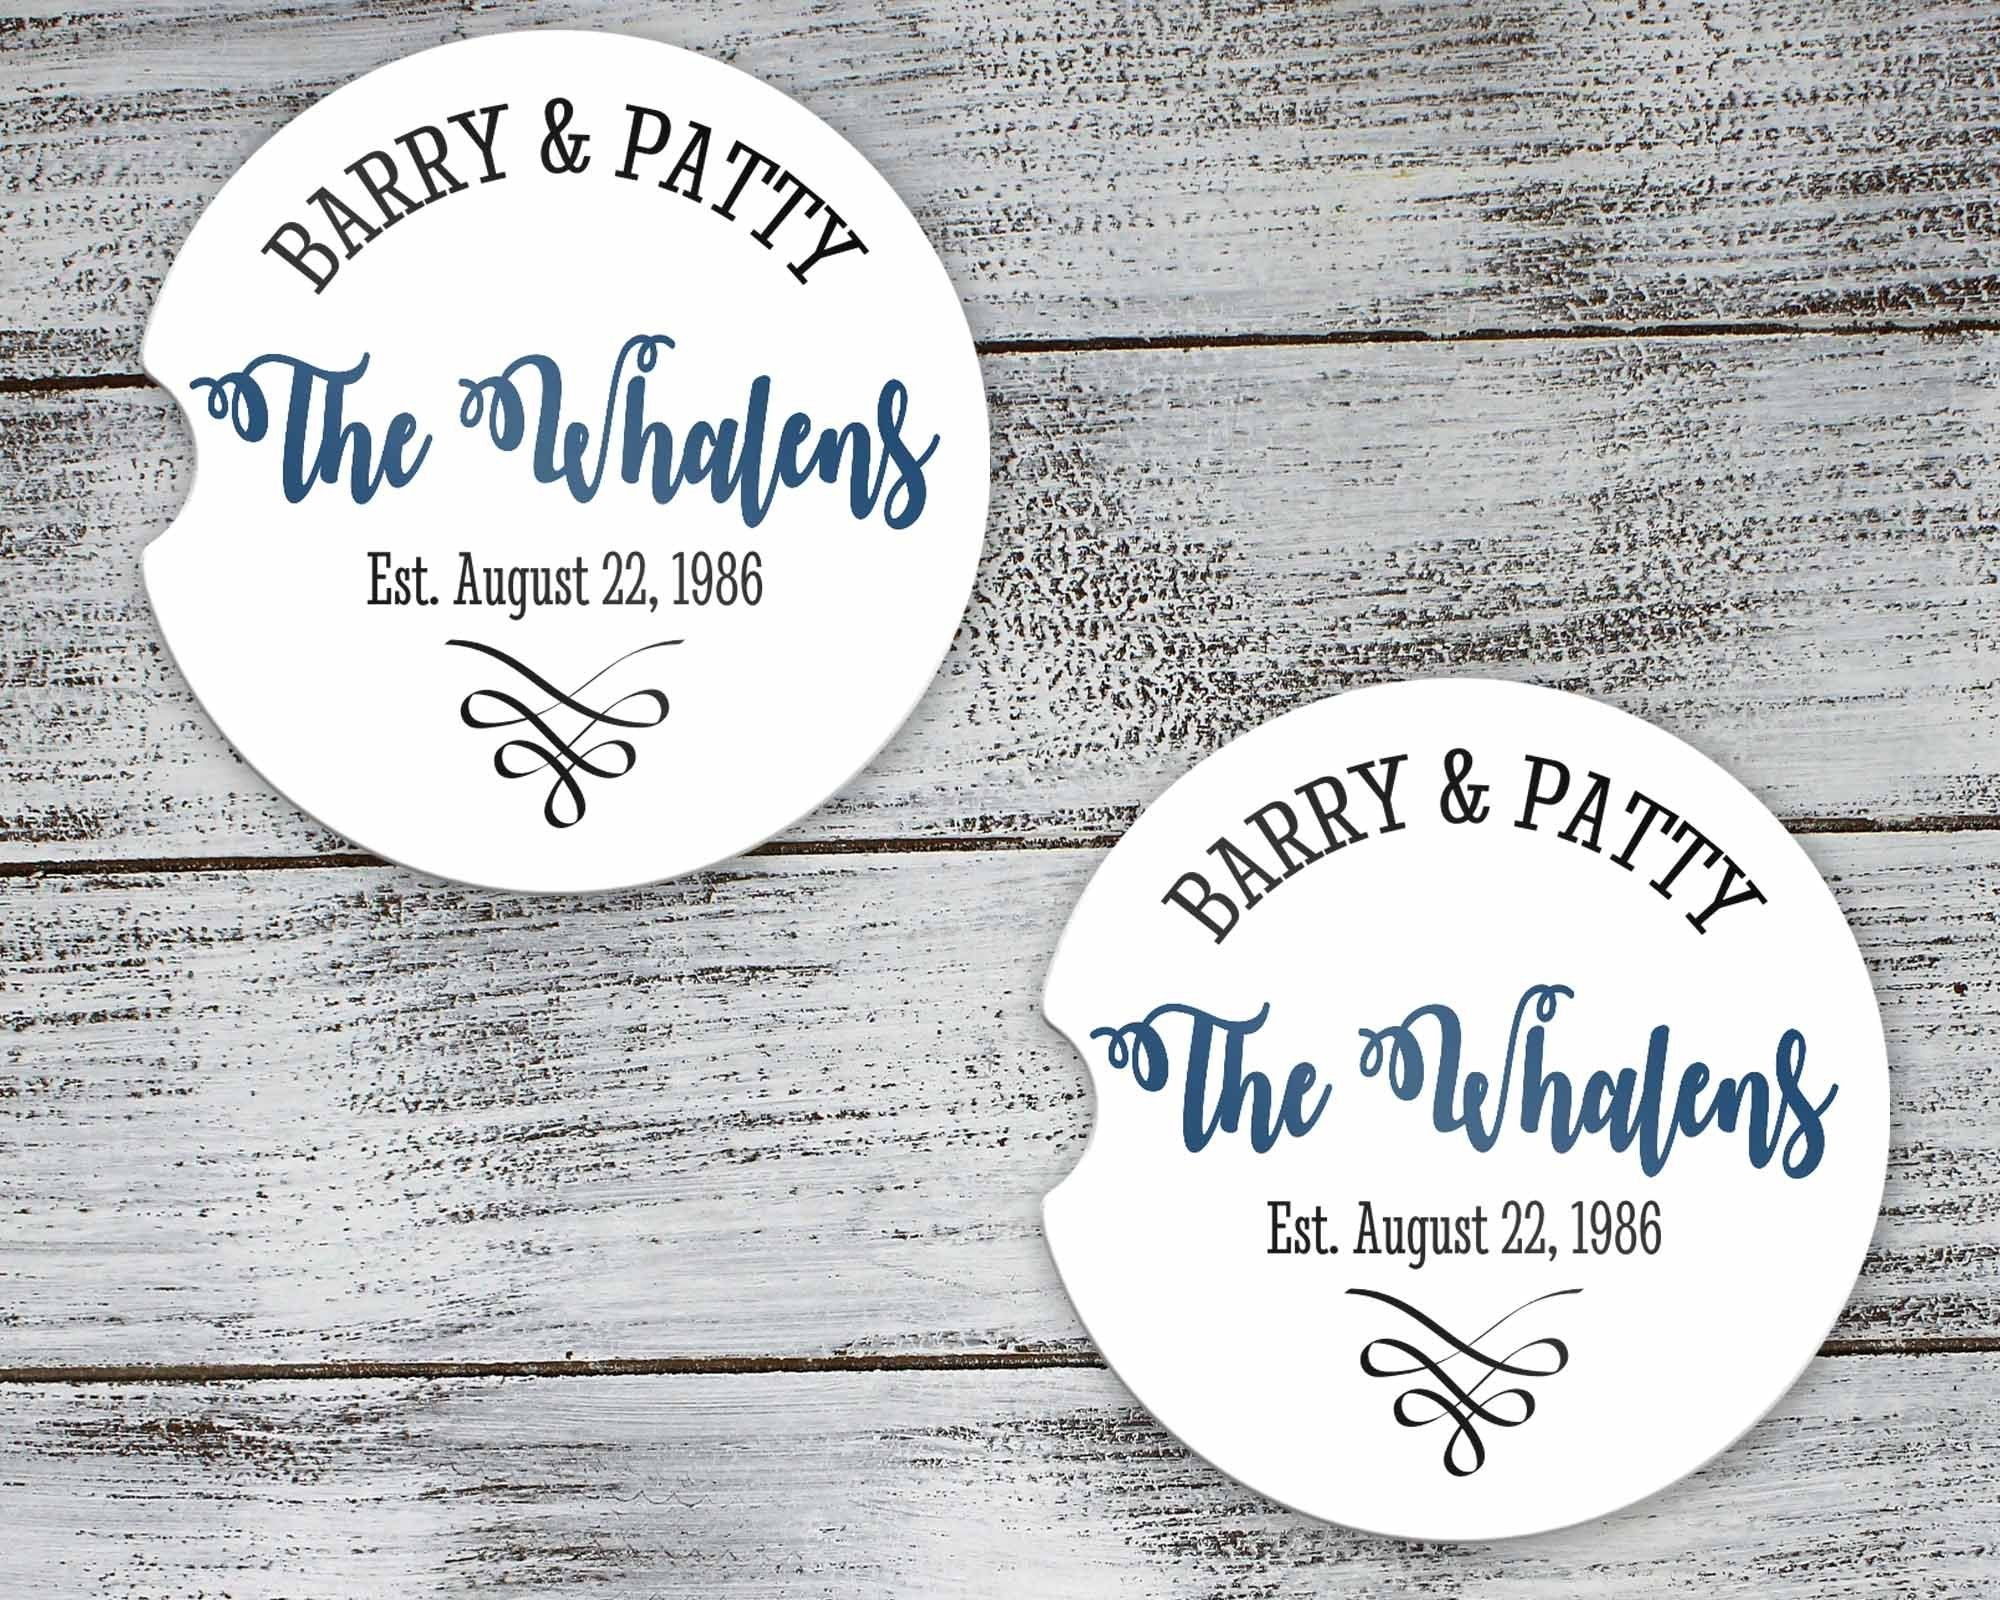 Car Accessories | Personalized Car Coasters | Custom Car Accessories | Anniversary | Set of 2 | This and That Solutions | Personalized Gifts | Custom Home Décor